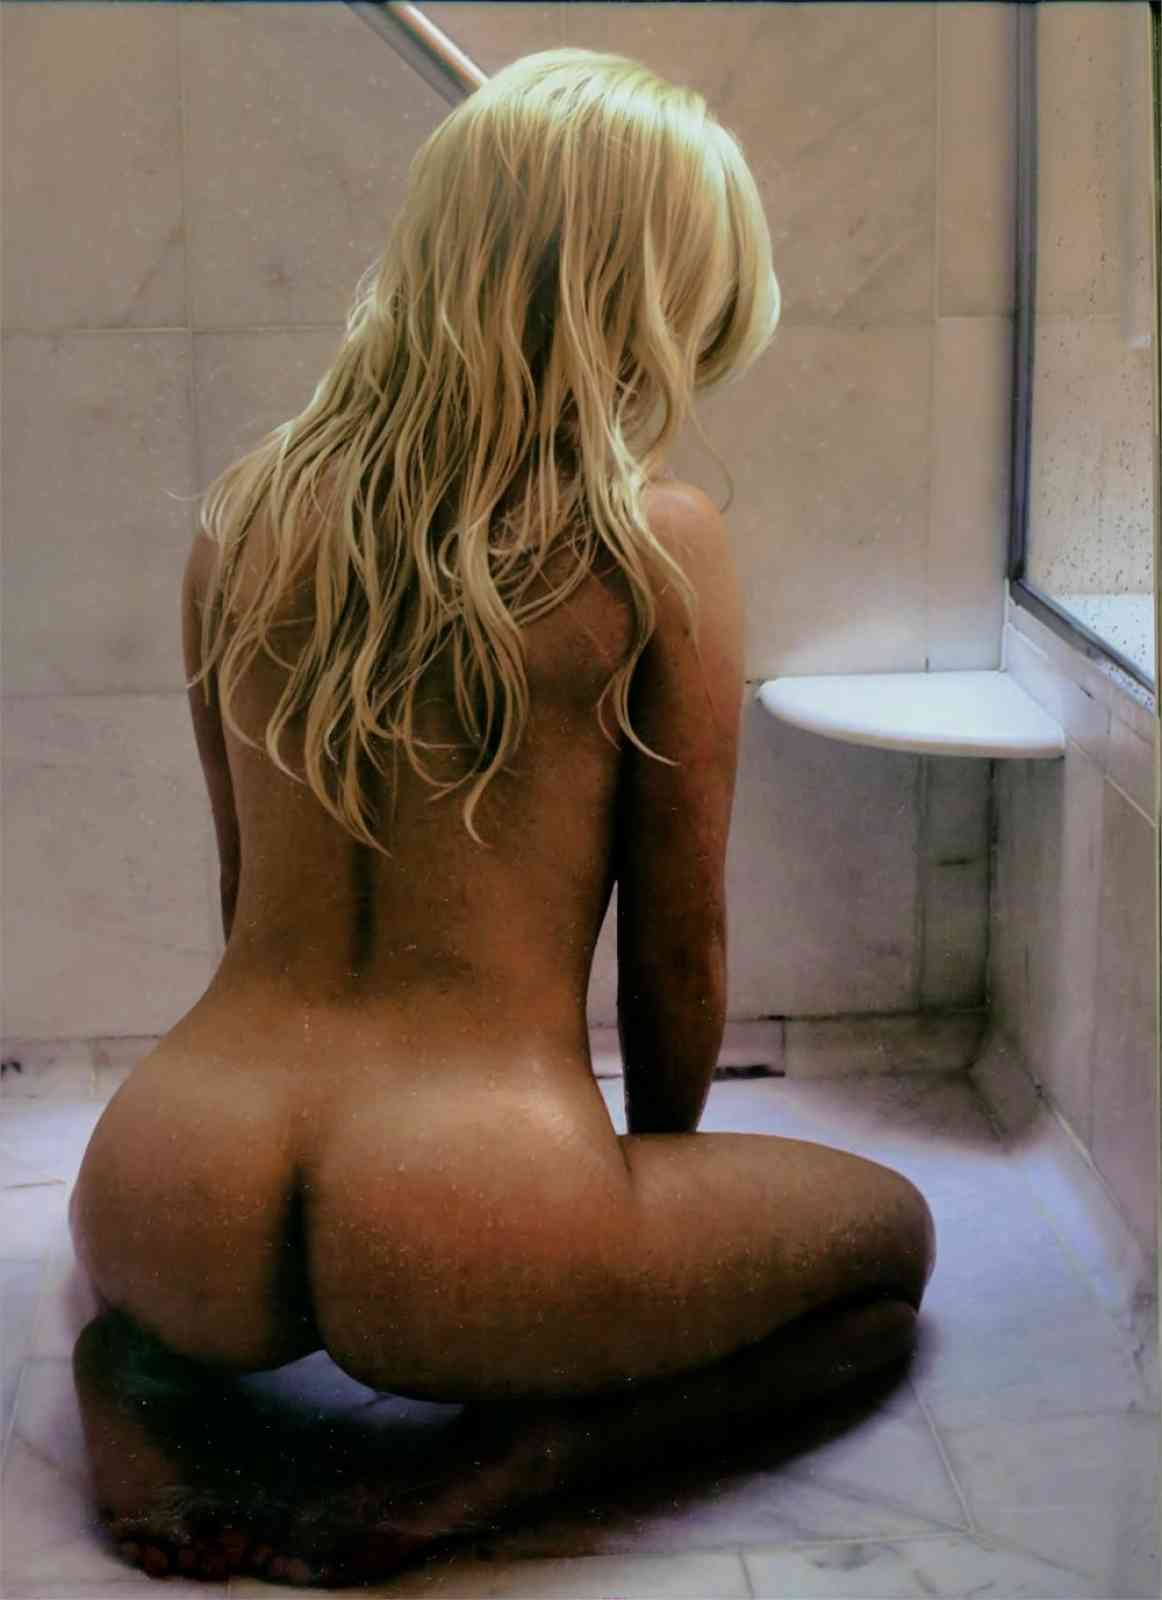 Cameraman took hayden panettiere naked shower scene that